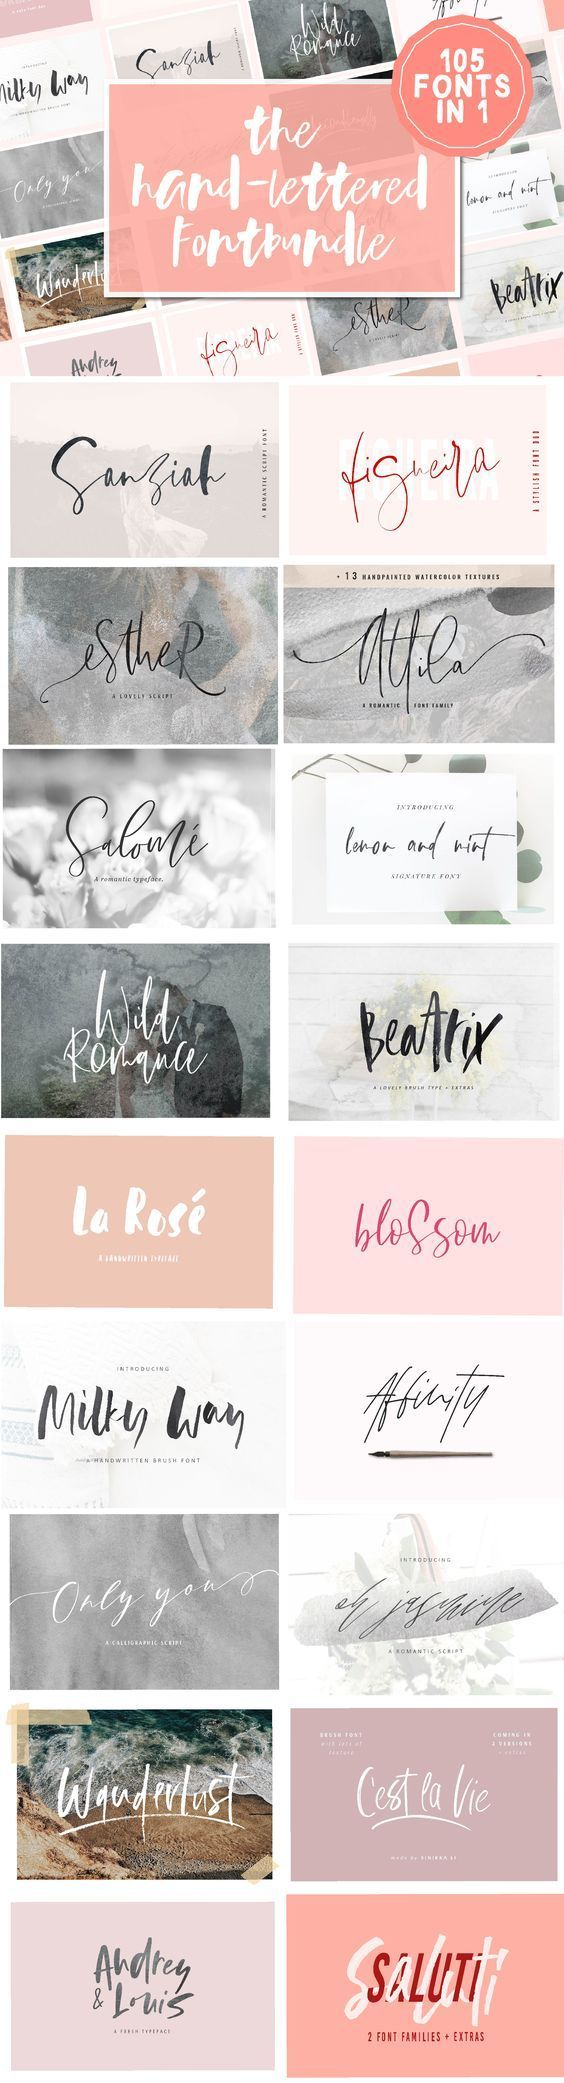 105 in 1 | Hand-Lettered Font Bundle – Jenny Chin-Lai